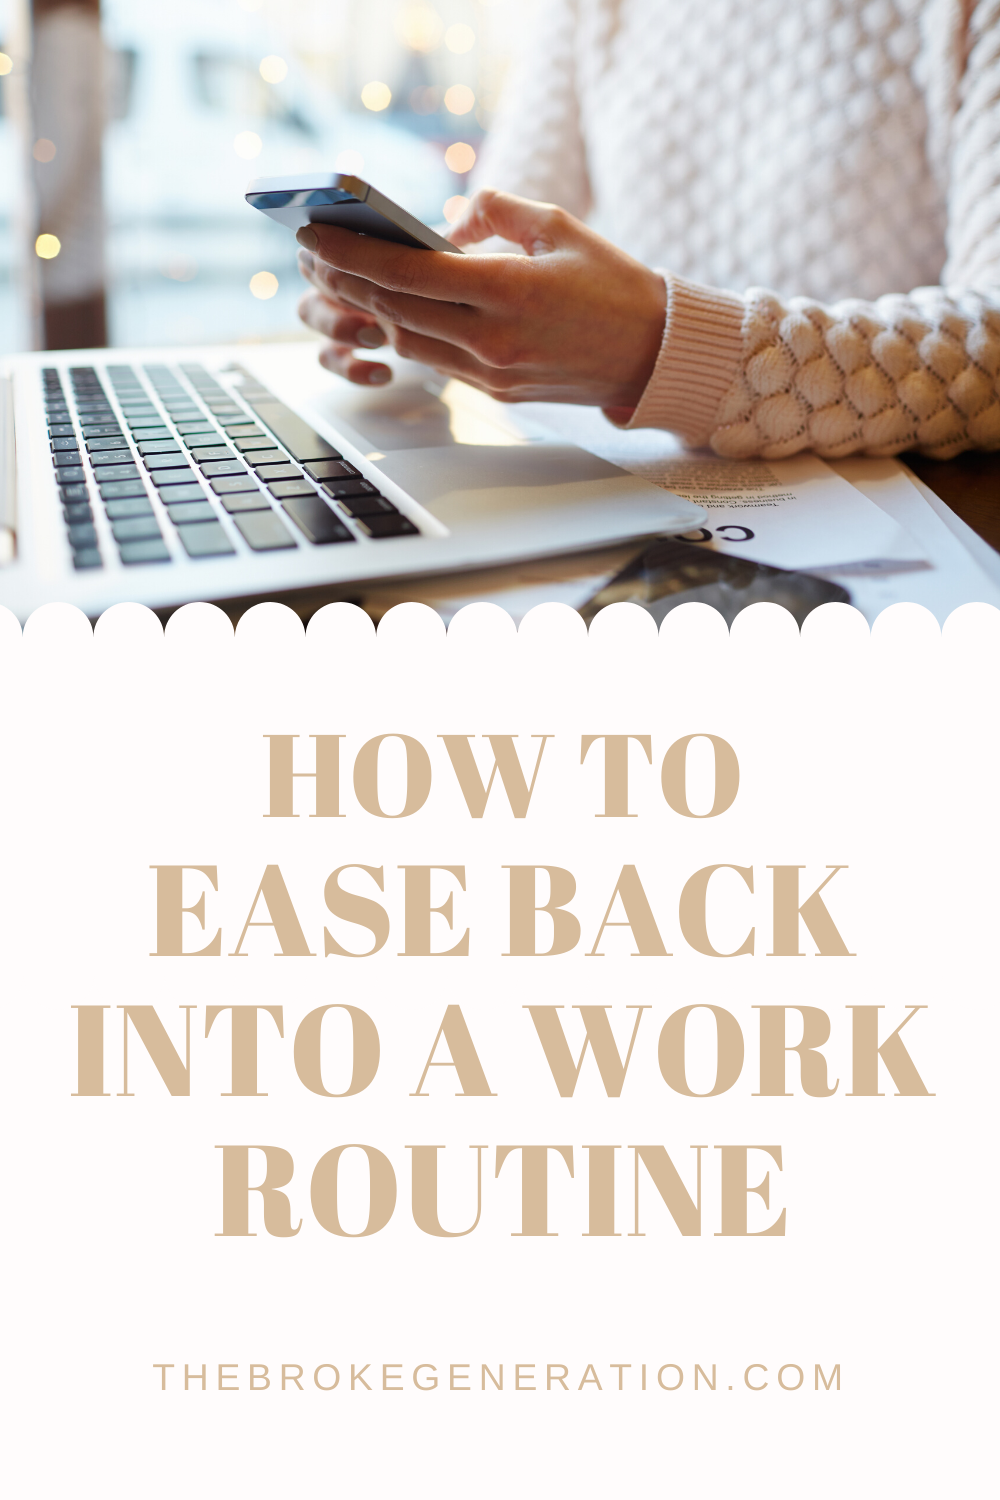 How to ease back into a work routine